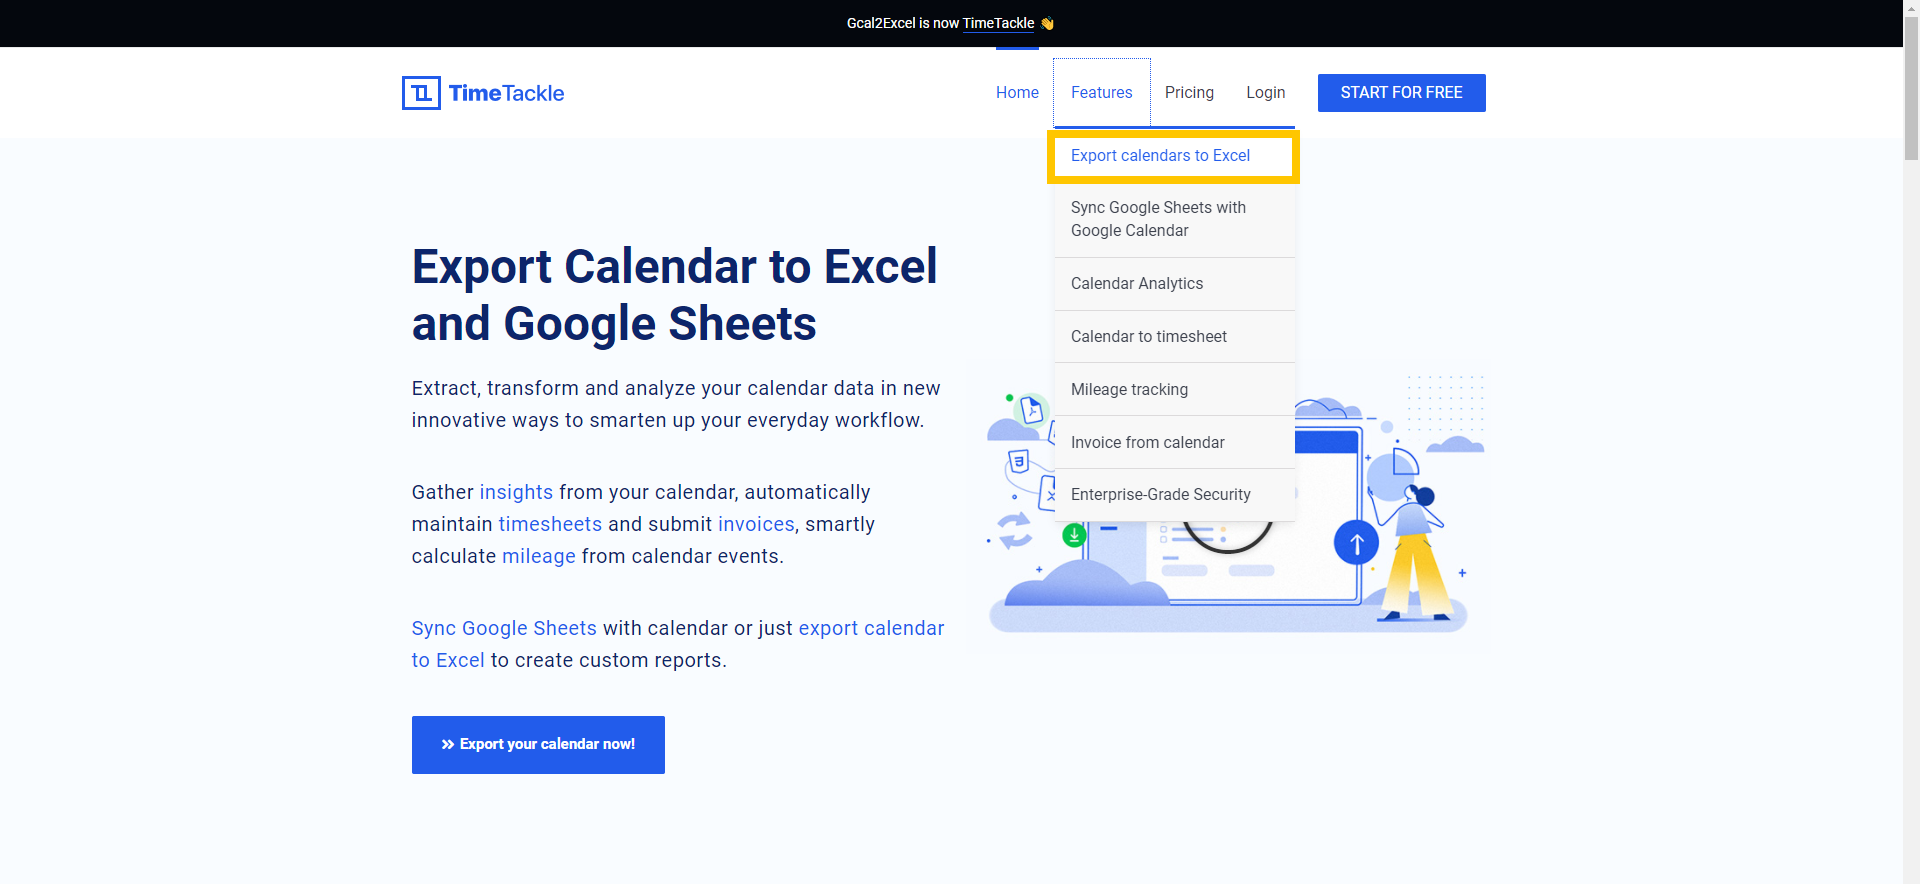 From the features drop down menu select export calendar to excel now.